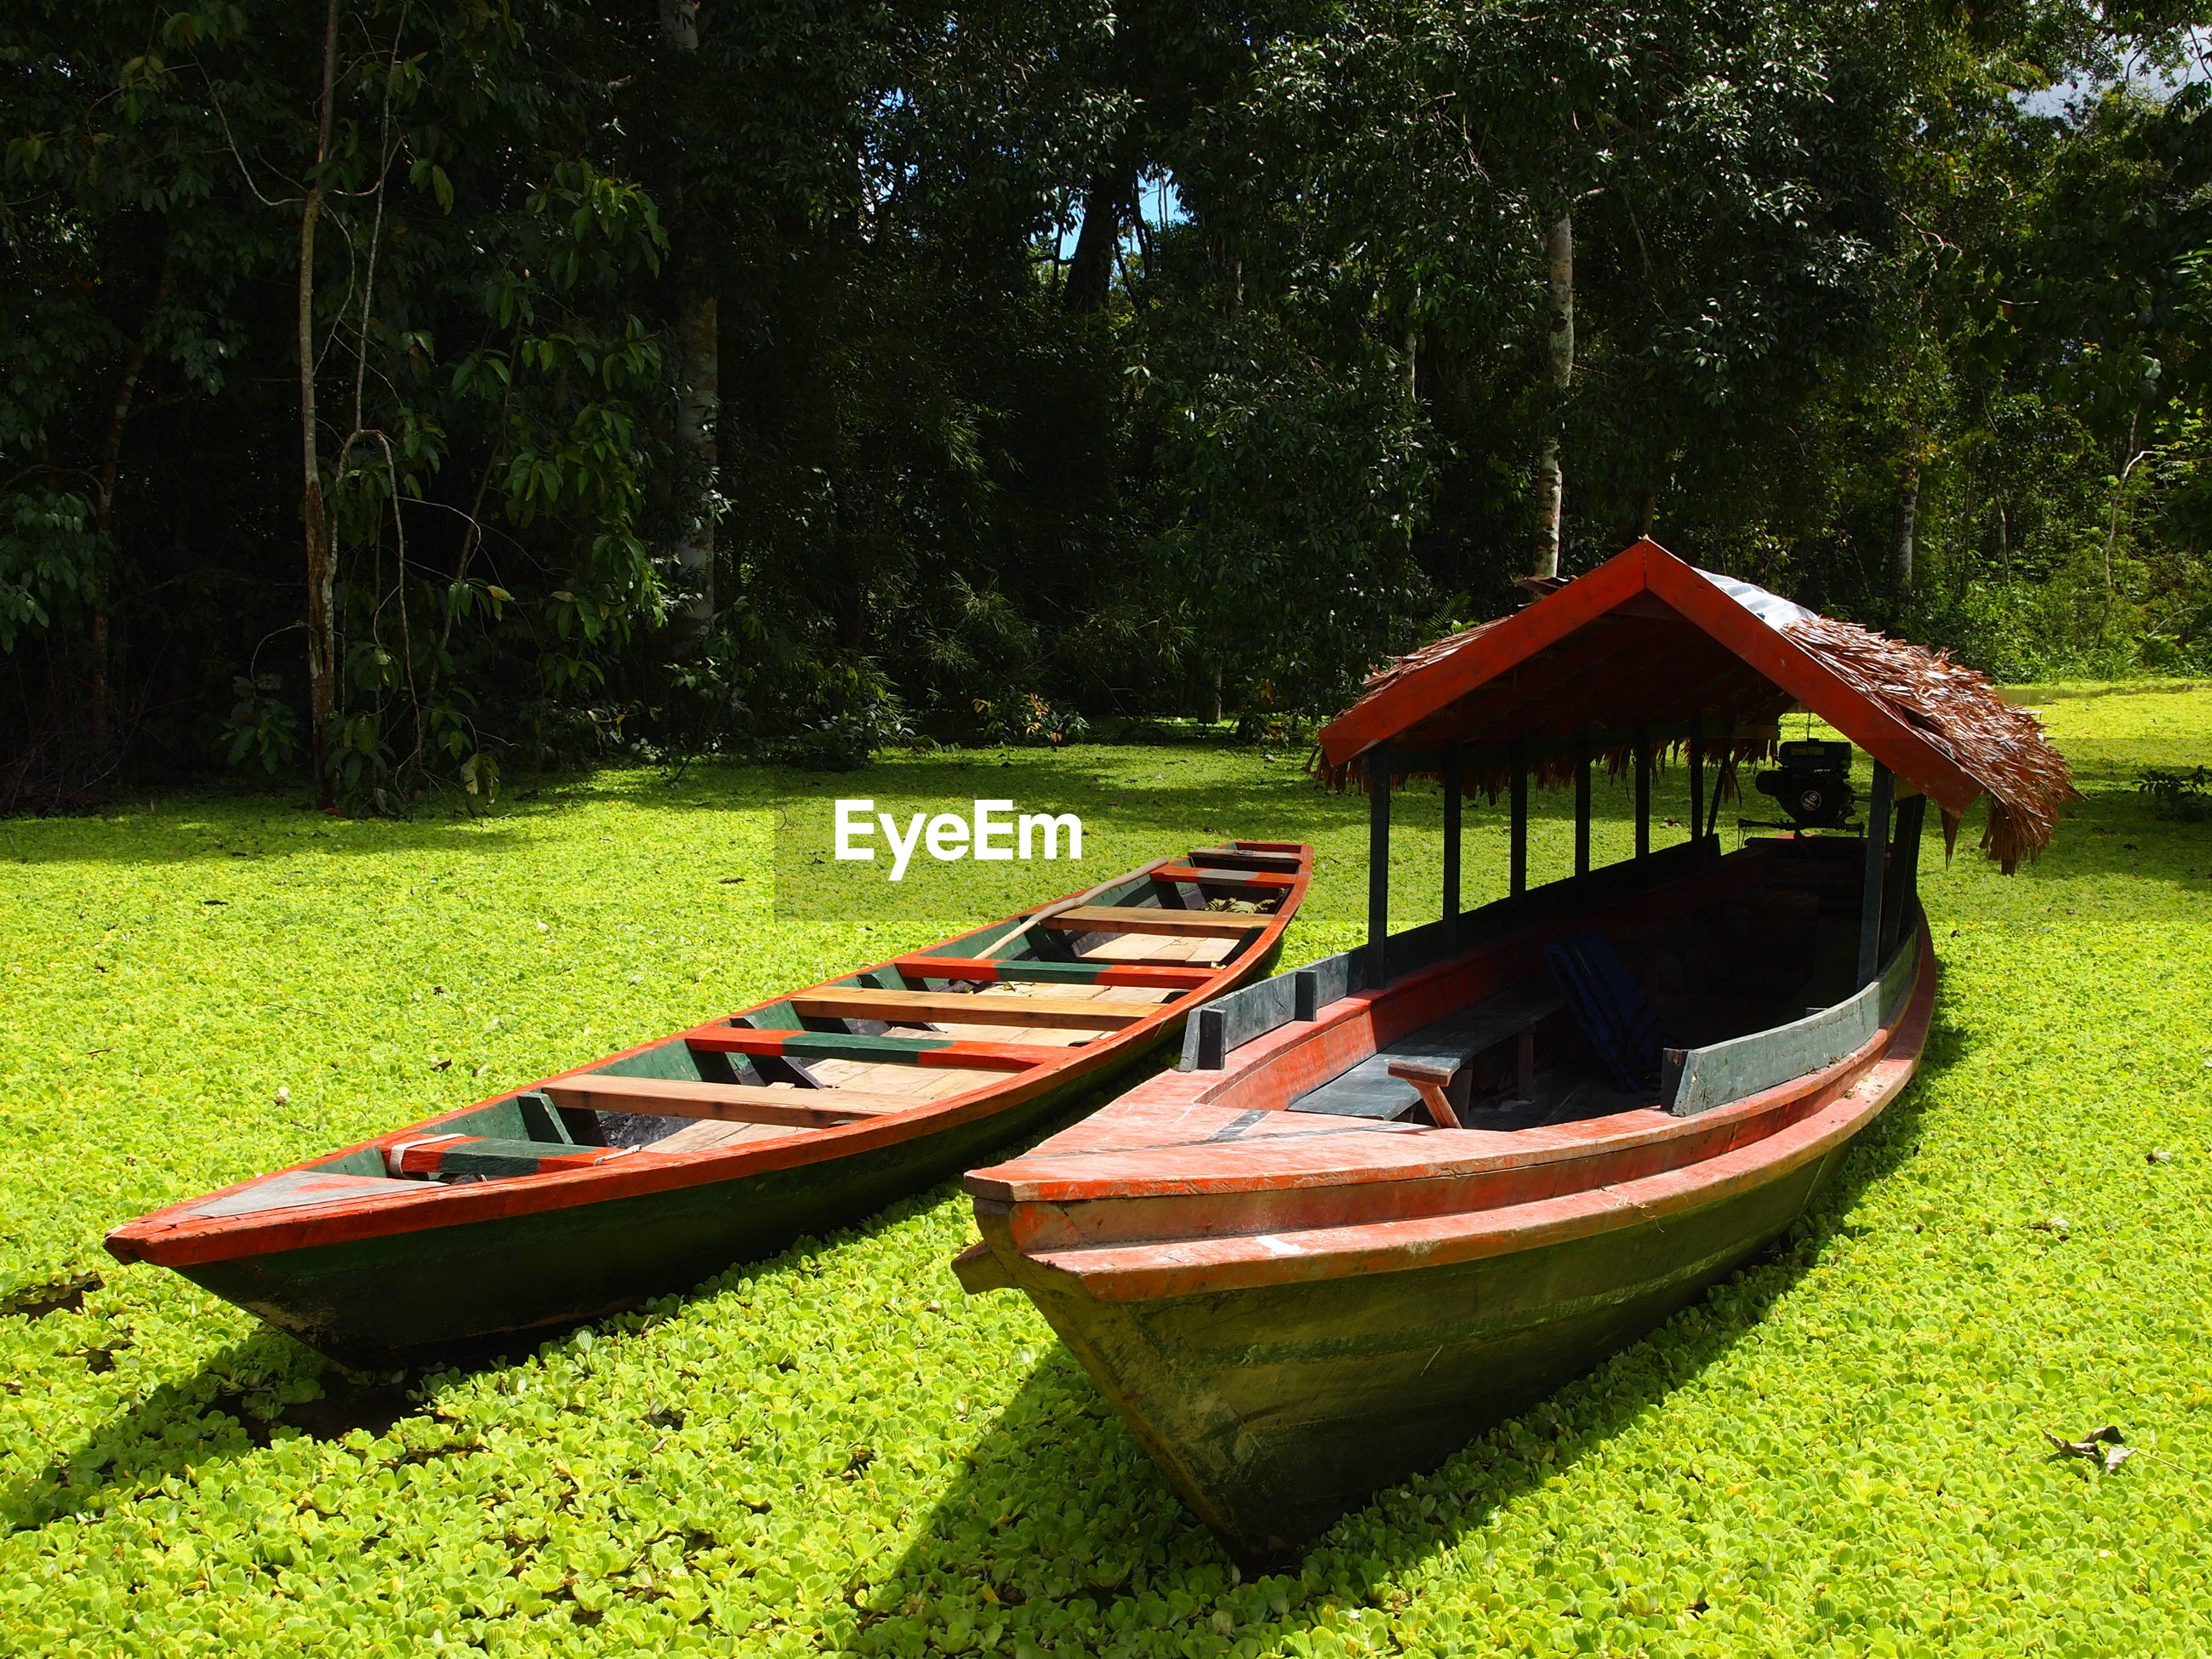 Boat moored on lake by trees in forest